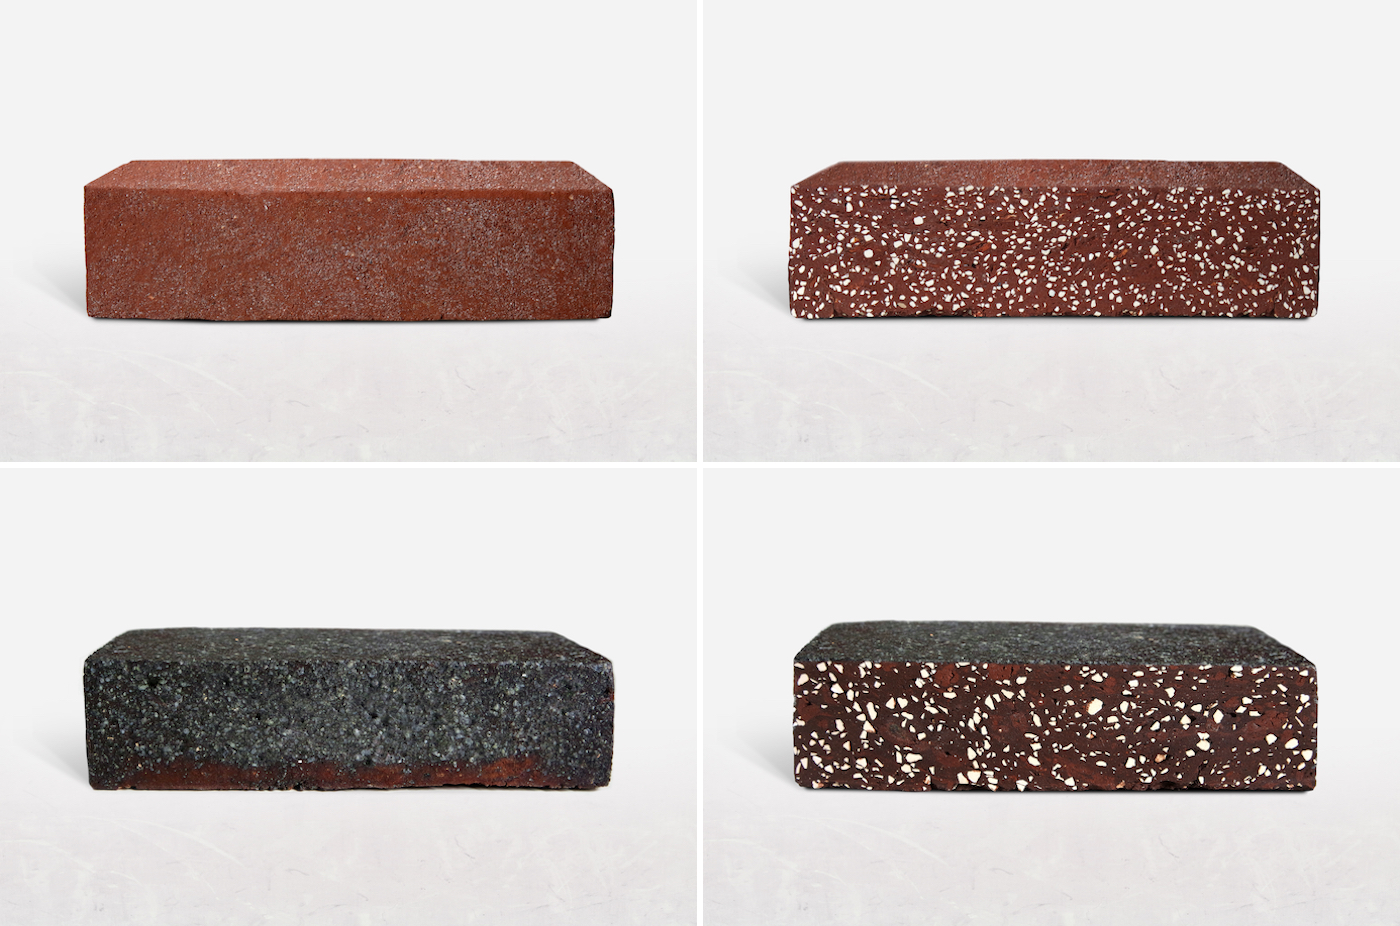 """""""Raw"""" and """"sliced"""" versions of the Salami and Truffle bricks"""